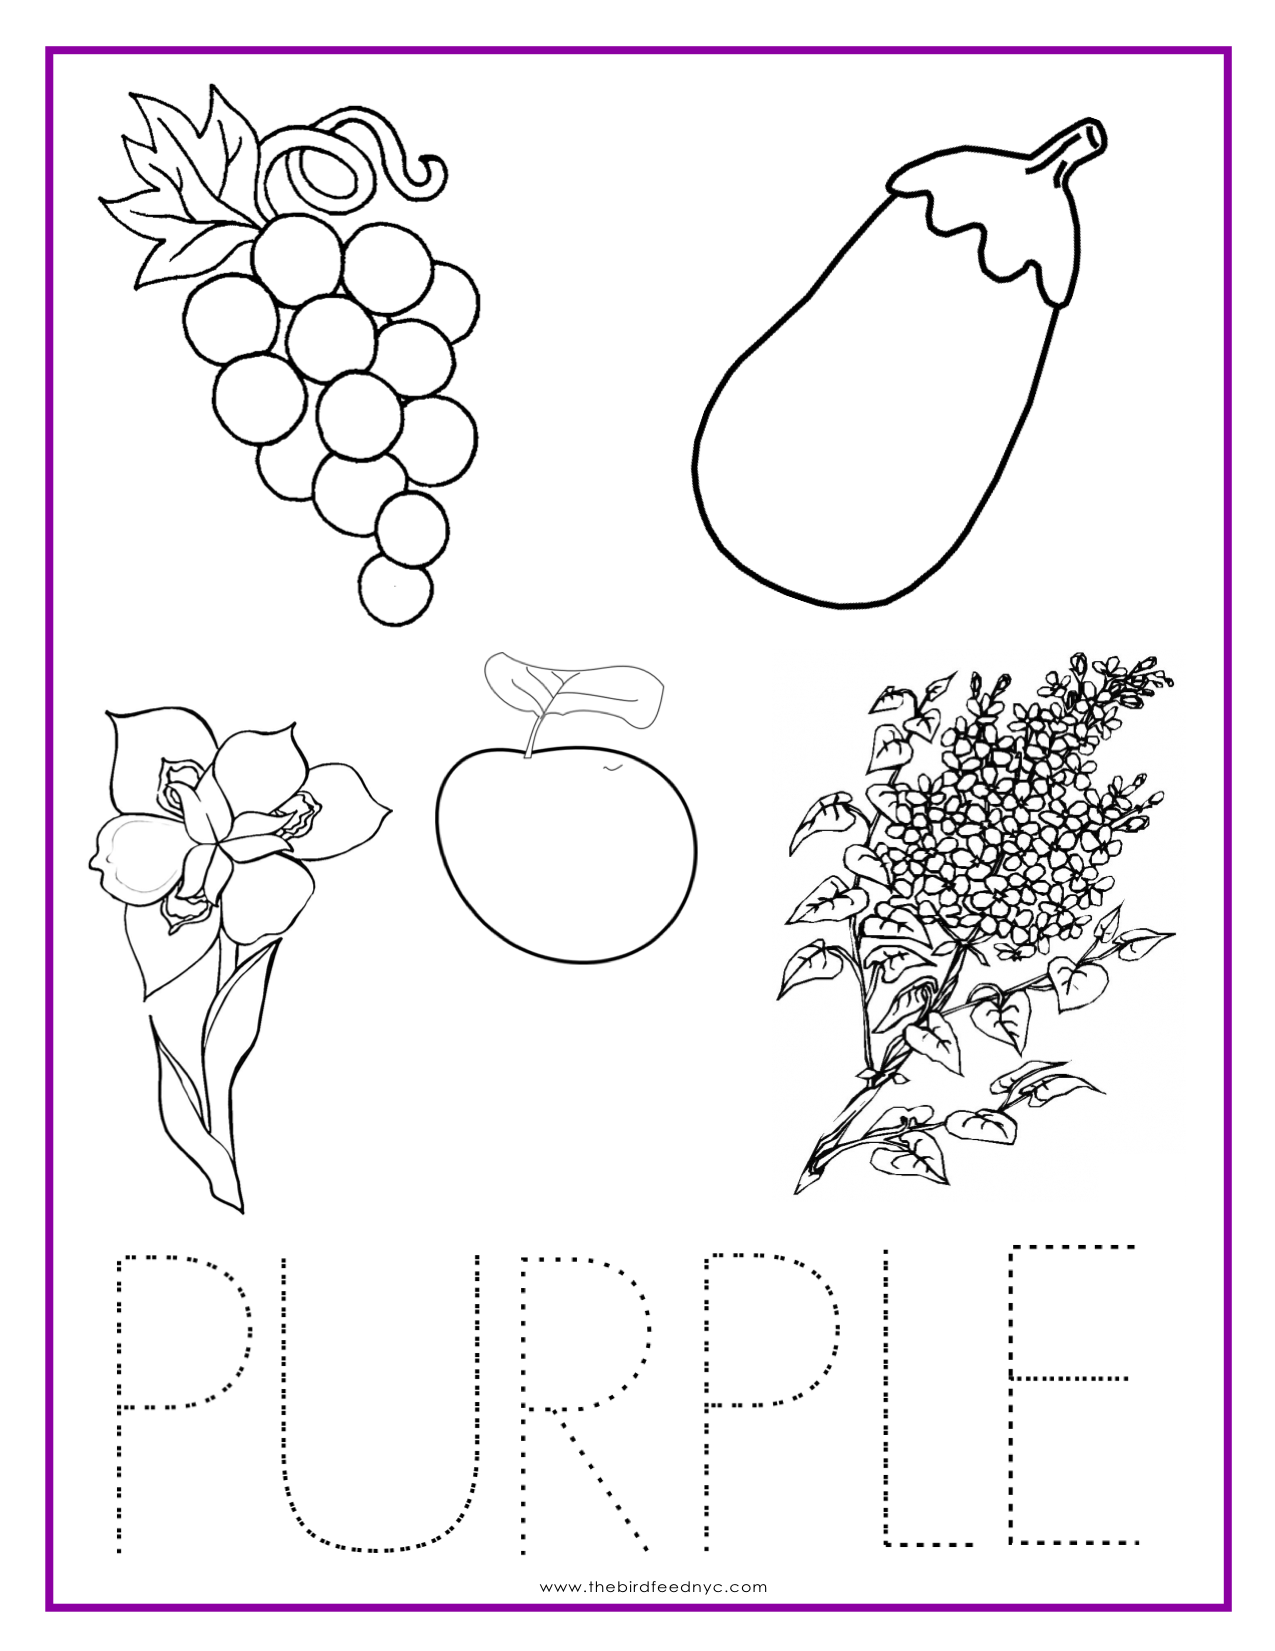 Printable Coloring Sheets